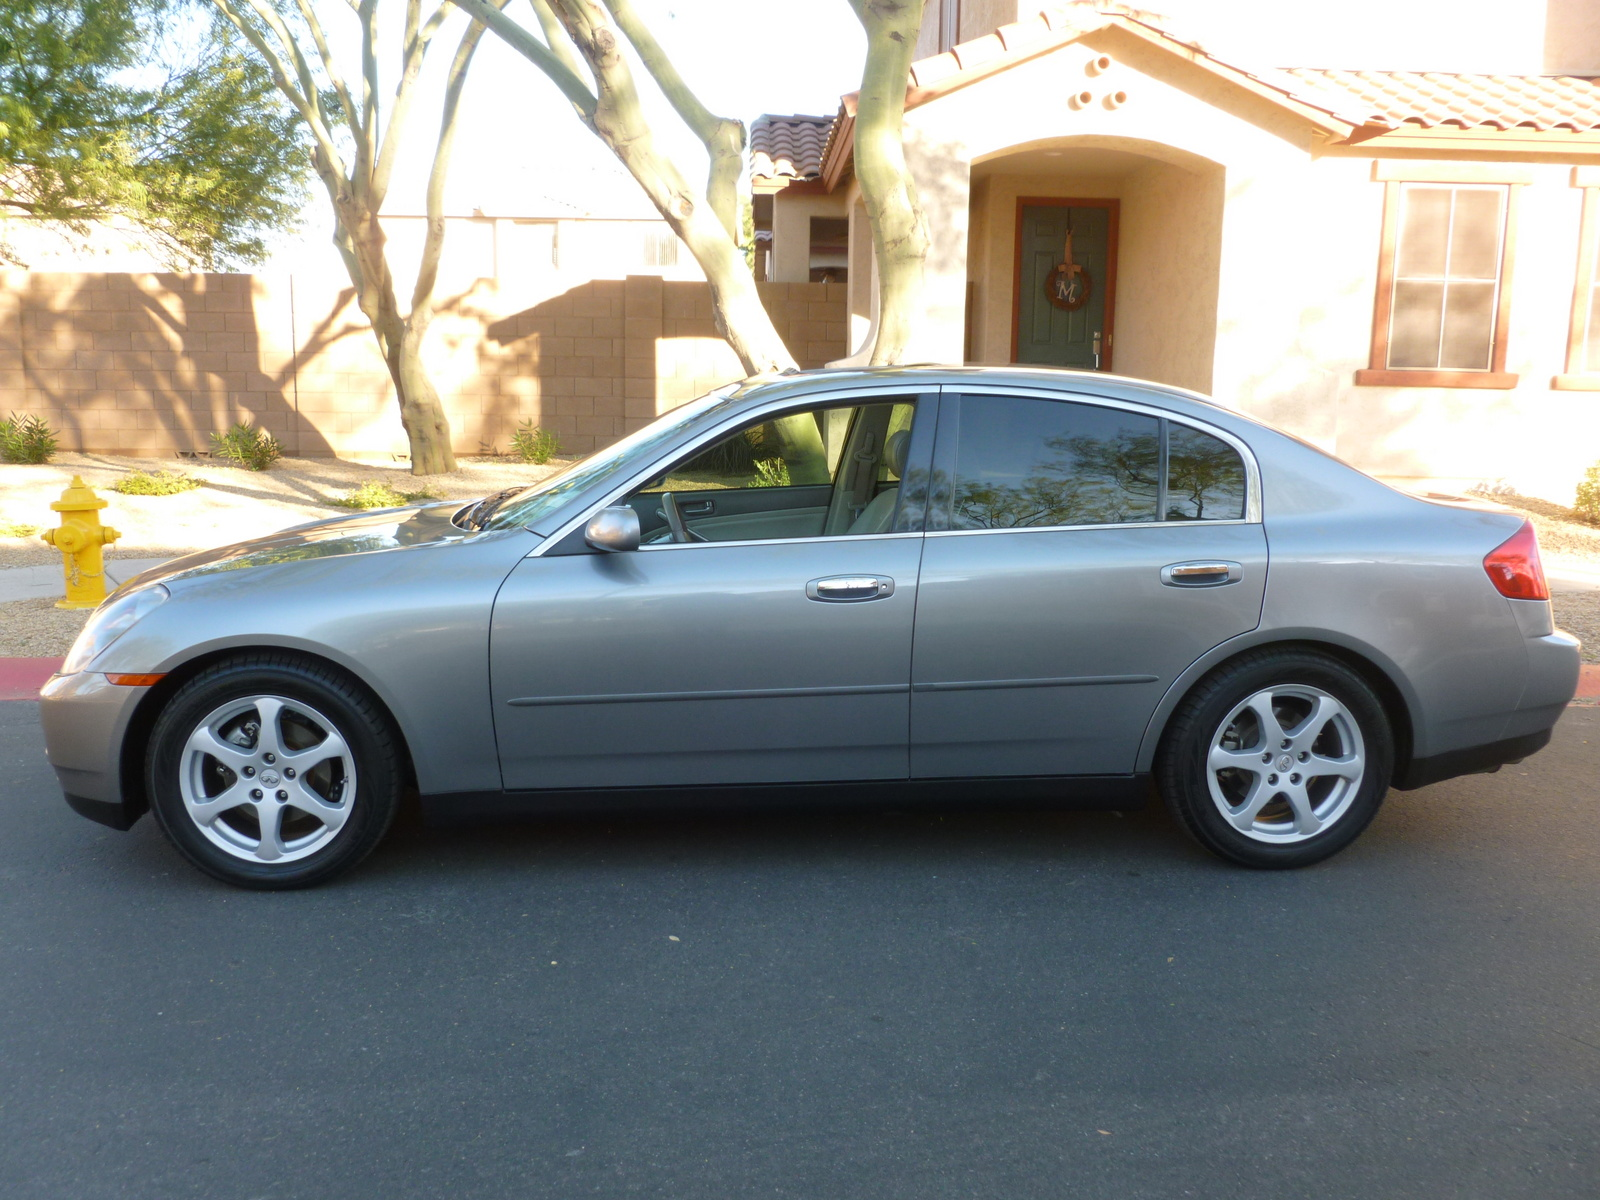 2004 infiniti g35 coupe specs pictures to pin on pinterest pinsdaddy. Black Bedroom Furniture Sets. Home Design Ideas